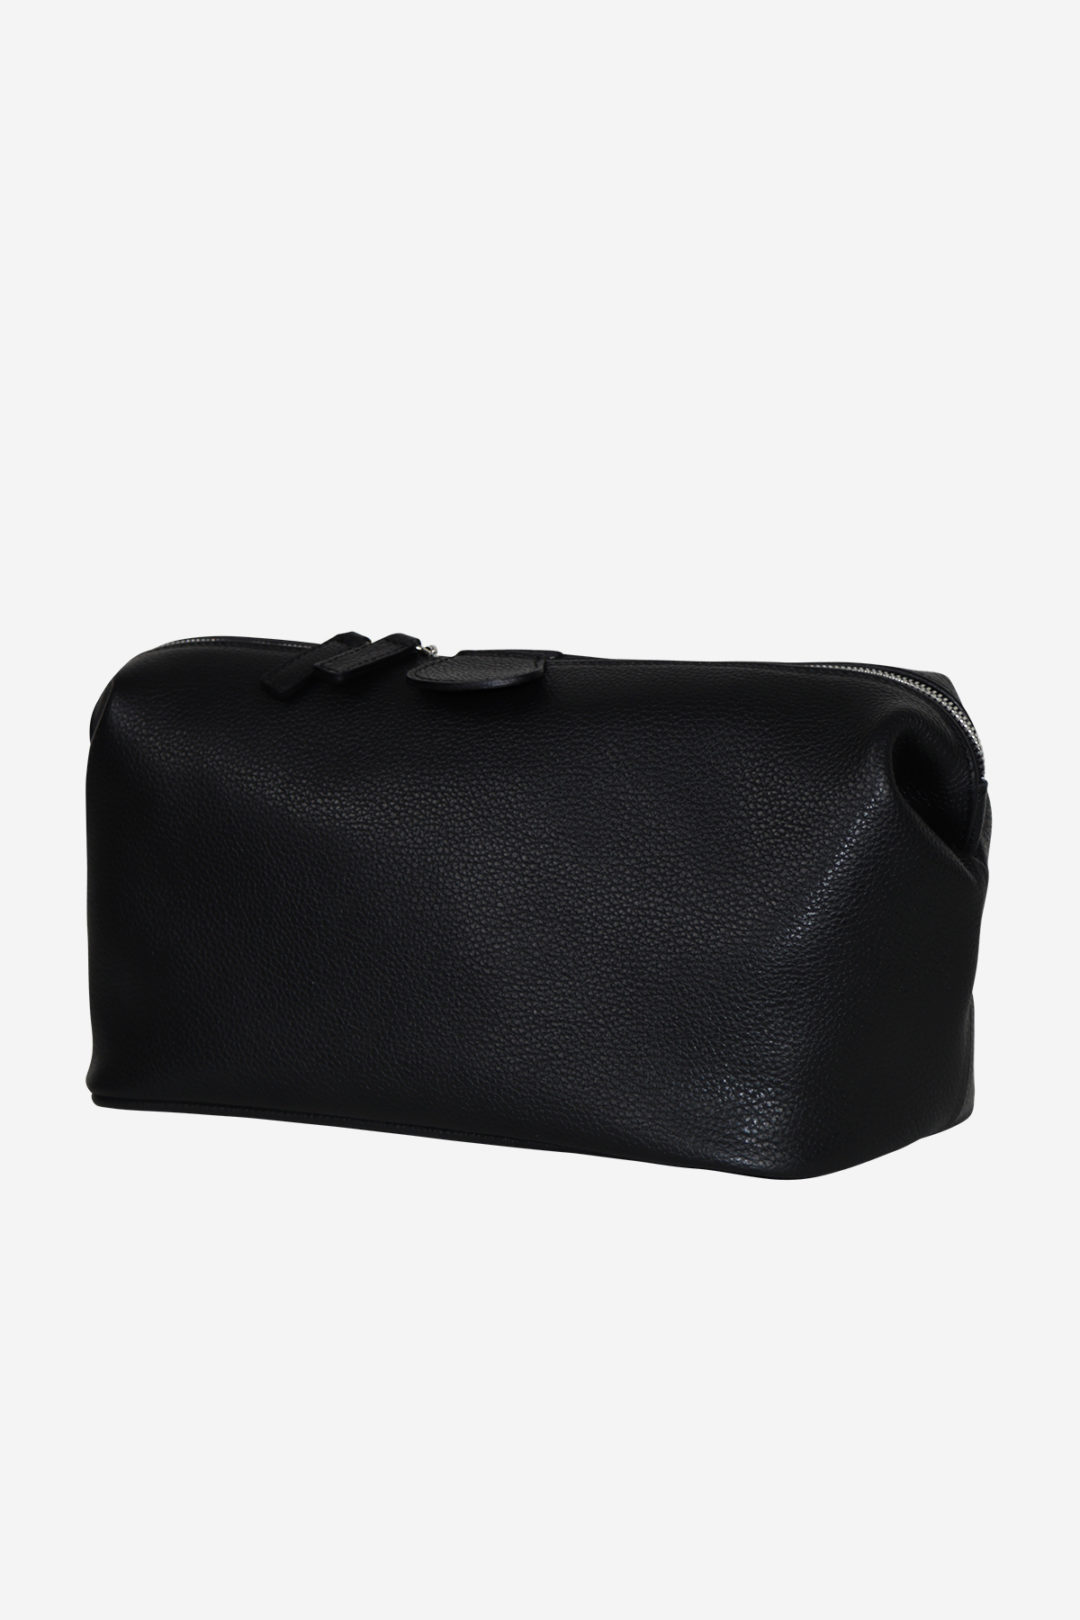 Original Sport Beauty Case total black leather waterproof and resistant